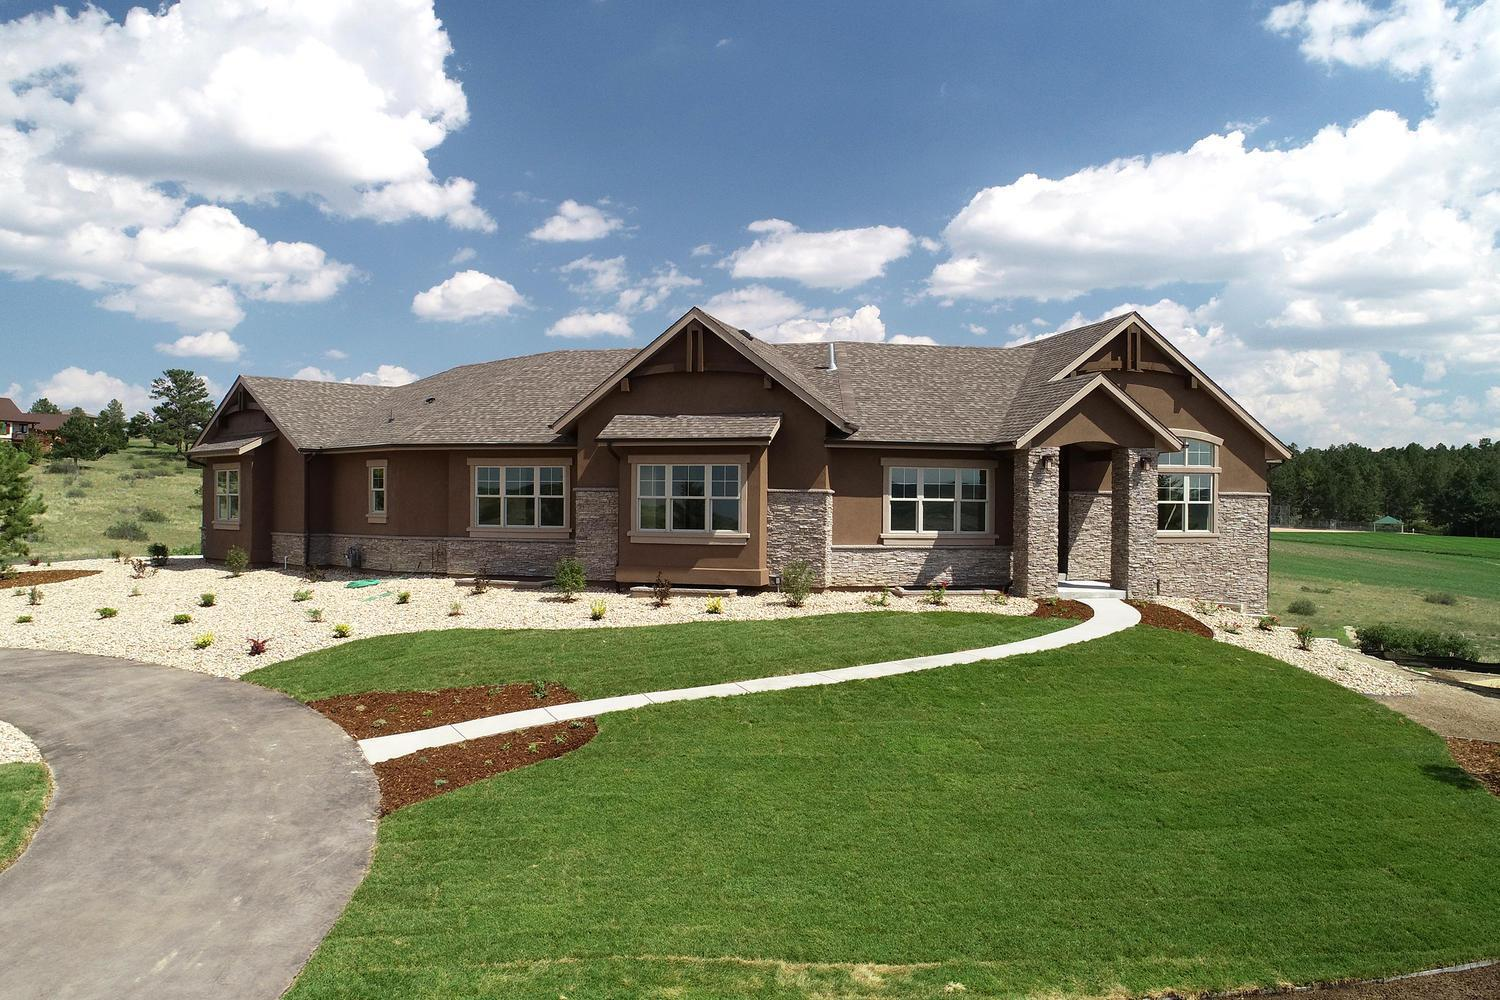 Single Family for Active at 7484 Lost Lake Drive Franktown, Colorado 80116 United States